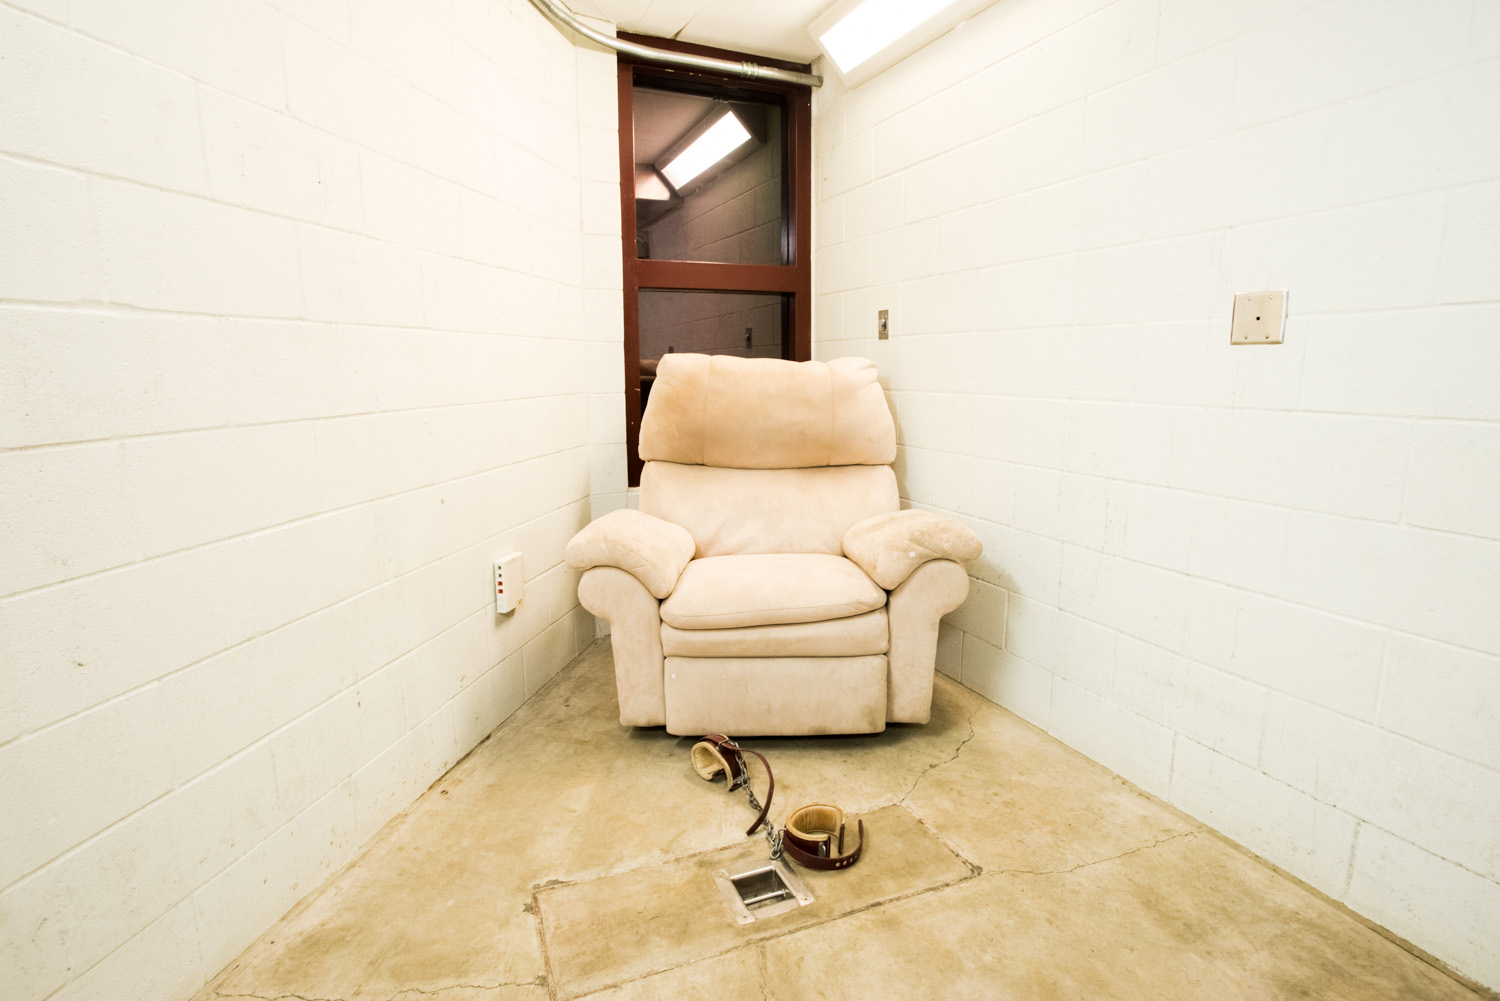 Compliant Detainee Media Room, Camp 5. From the ongoing series,  Gitmo at Home, Gitmo at Play.